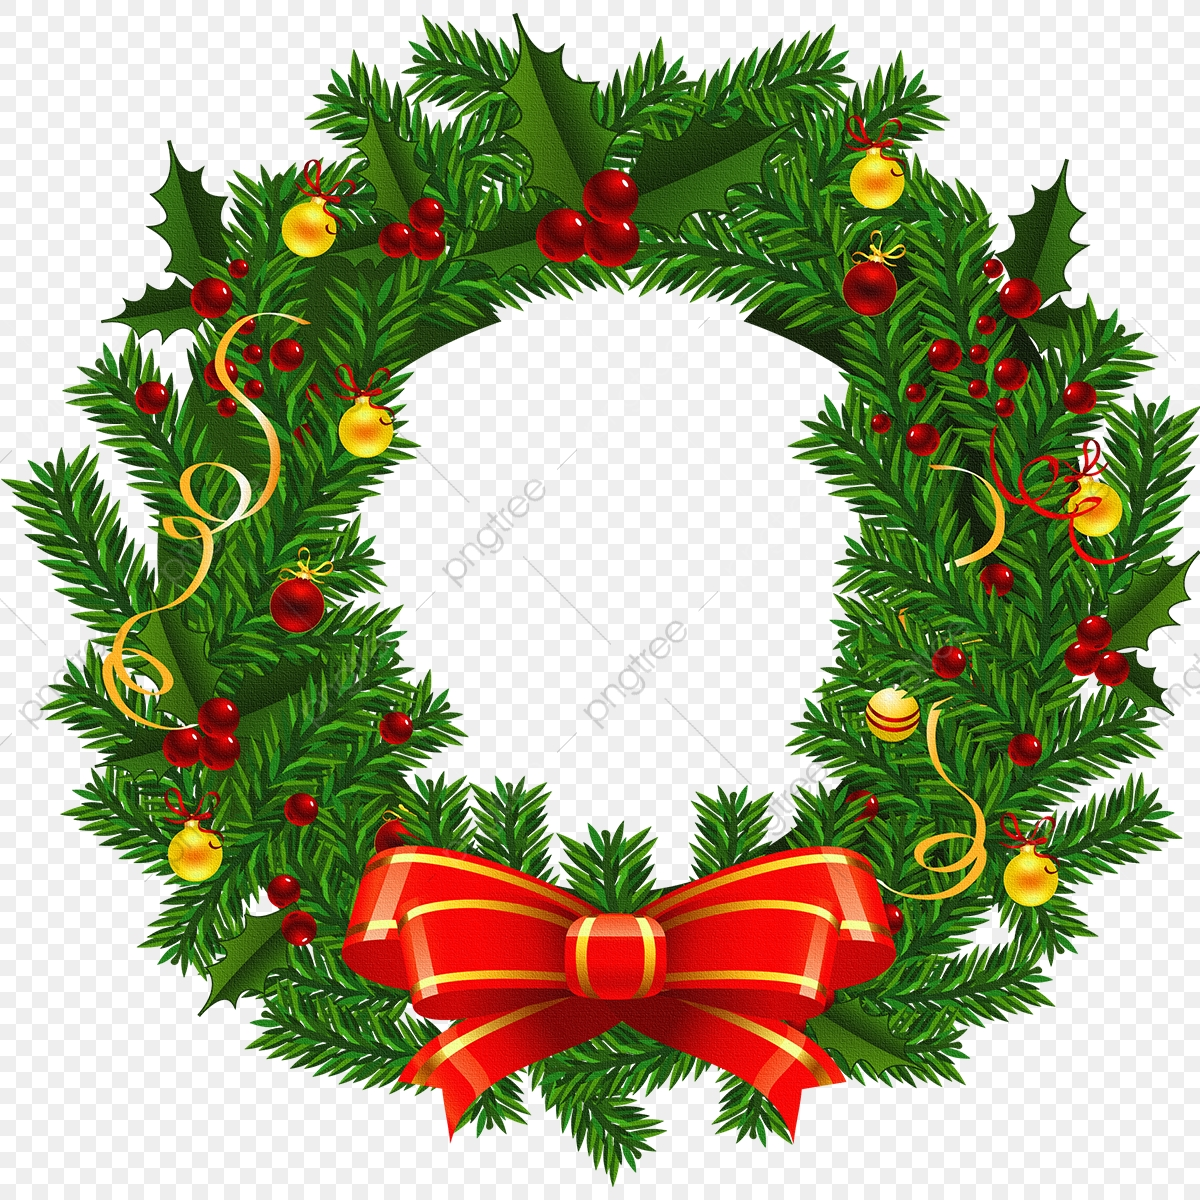 Christmas Wreath, Christmas Wreath Vector, Wreath Vector PNG.